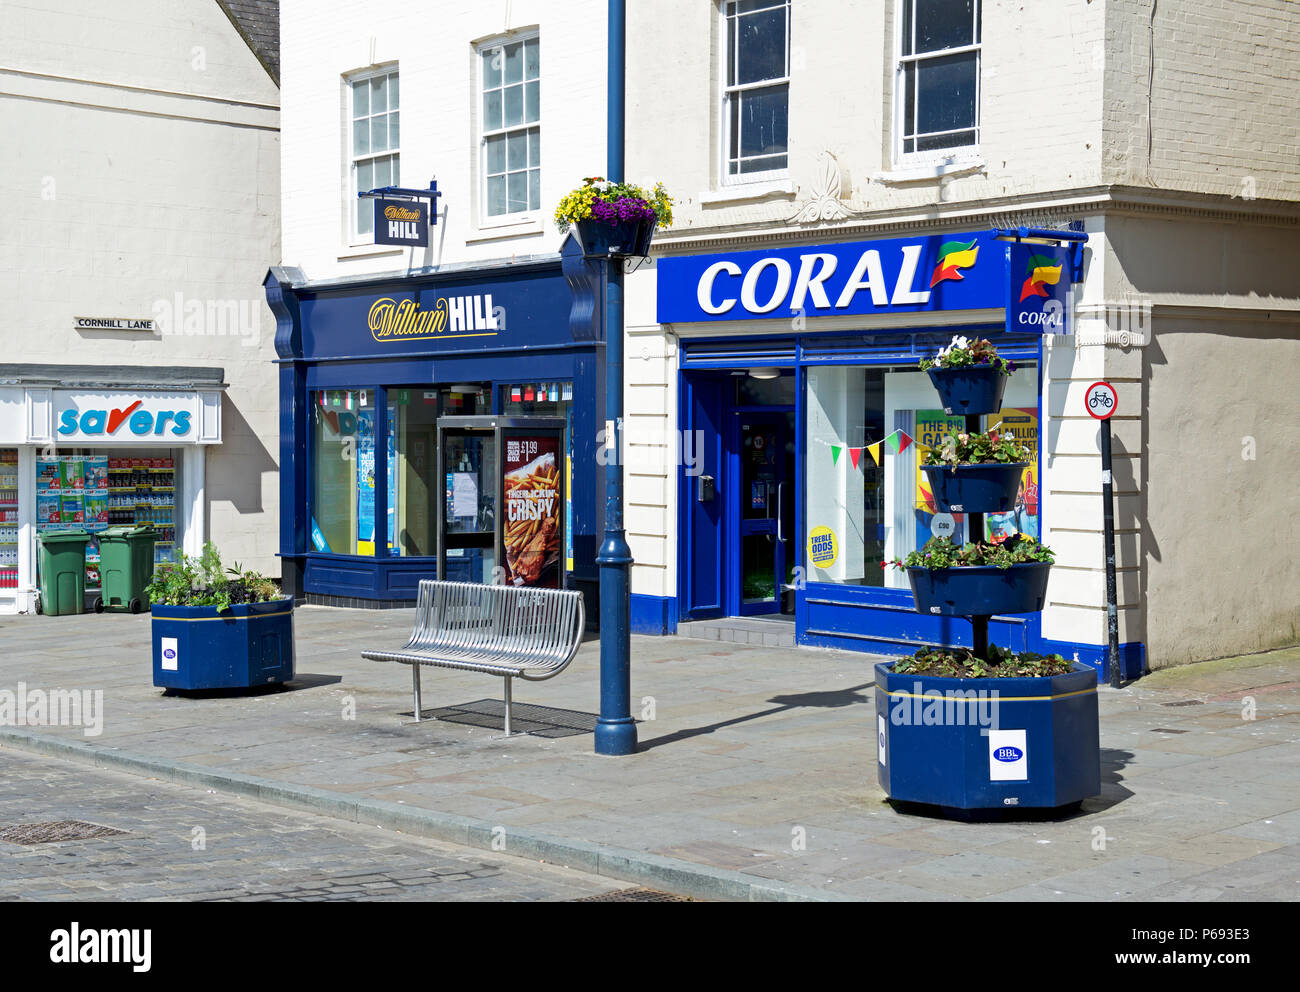 coral uk betting shops scotland